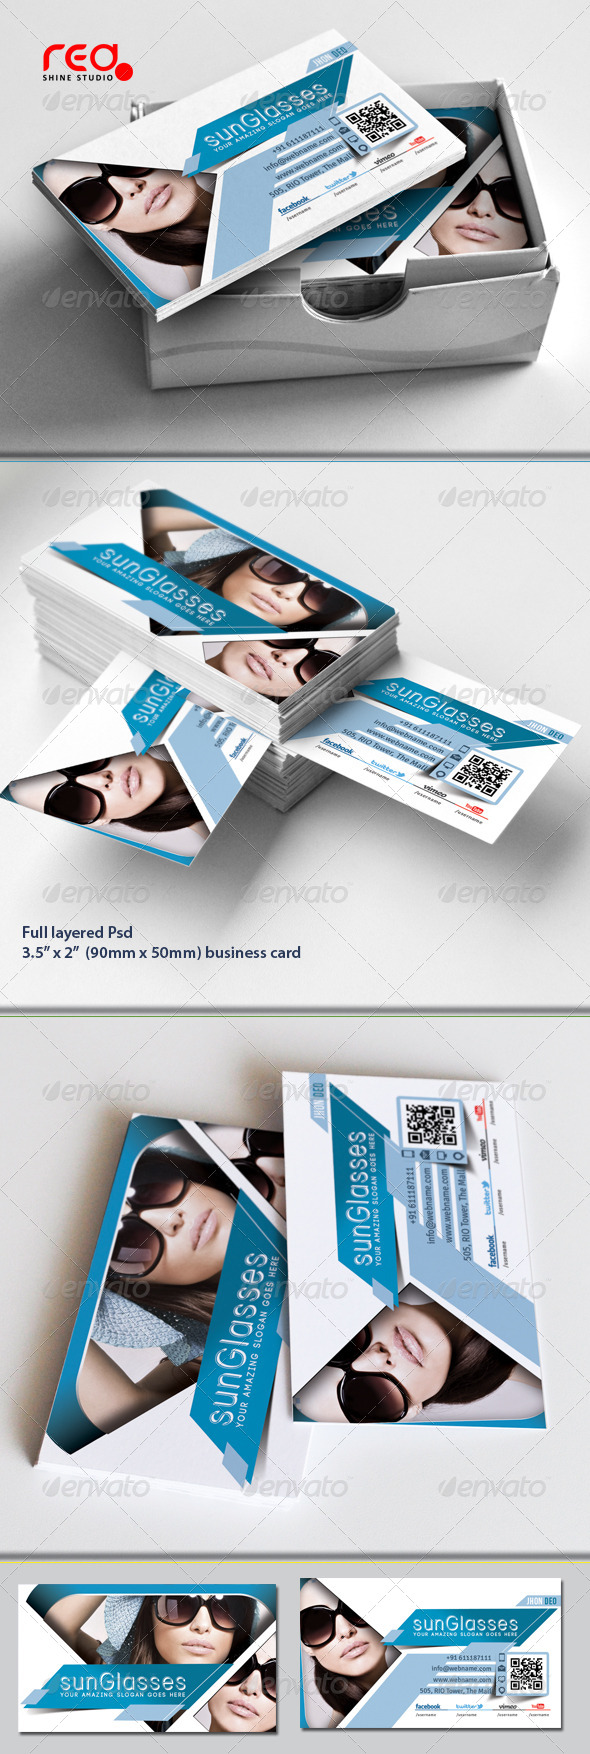 GraphicRiver SunGlasses Fashion Store Business Card Set 5414302